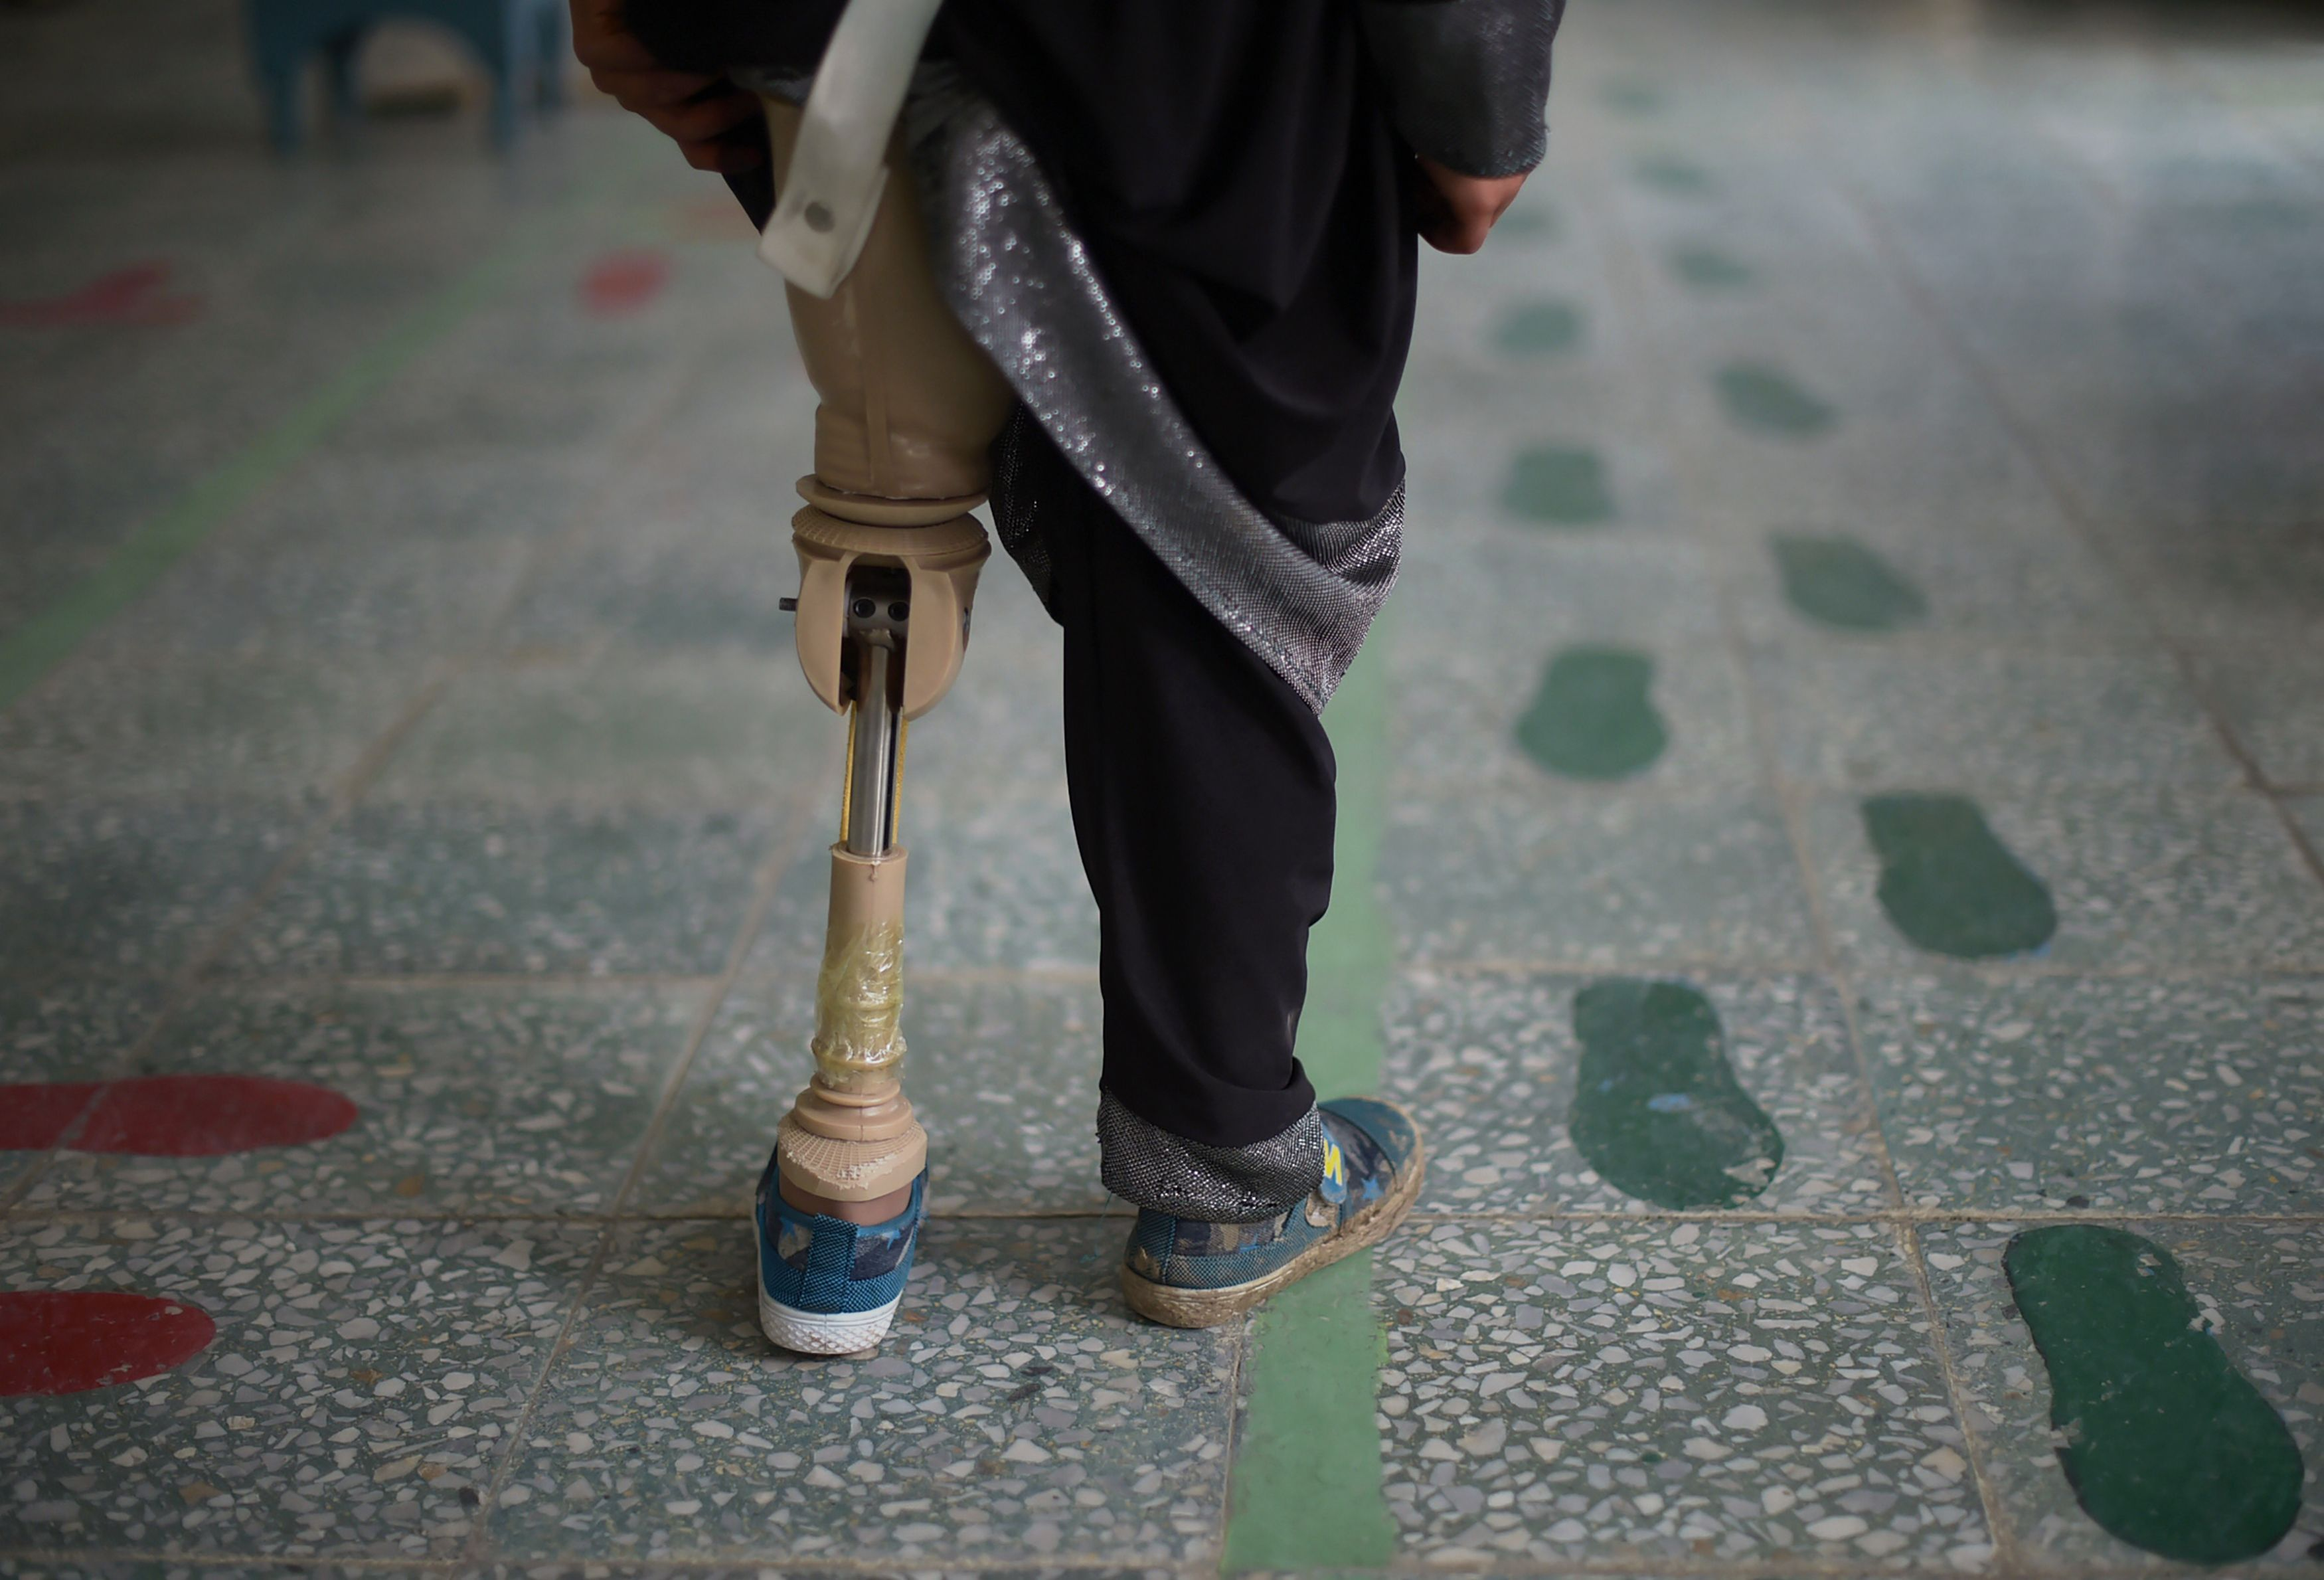 Taliban explosives are becoming more powerful. Afghan soldiers are paying the price.